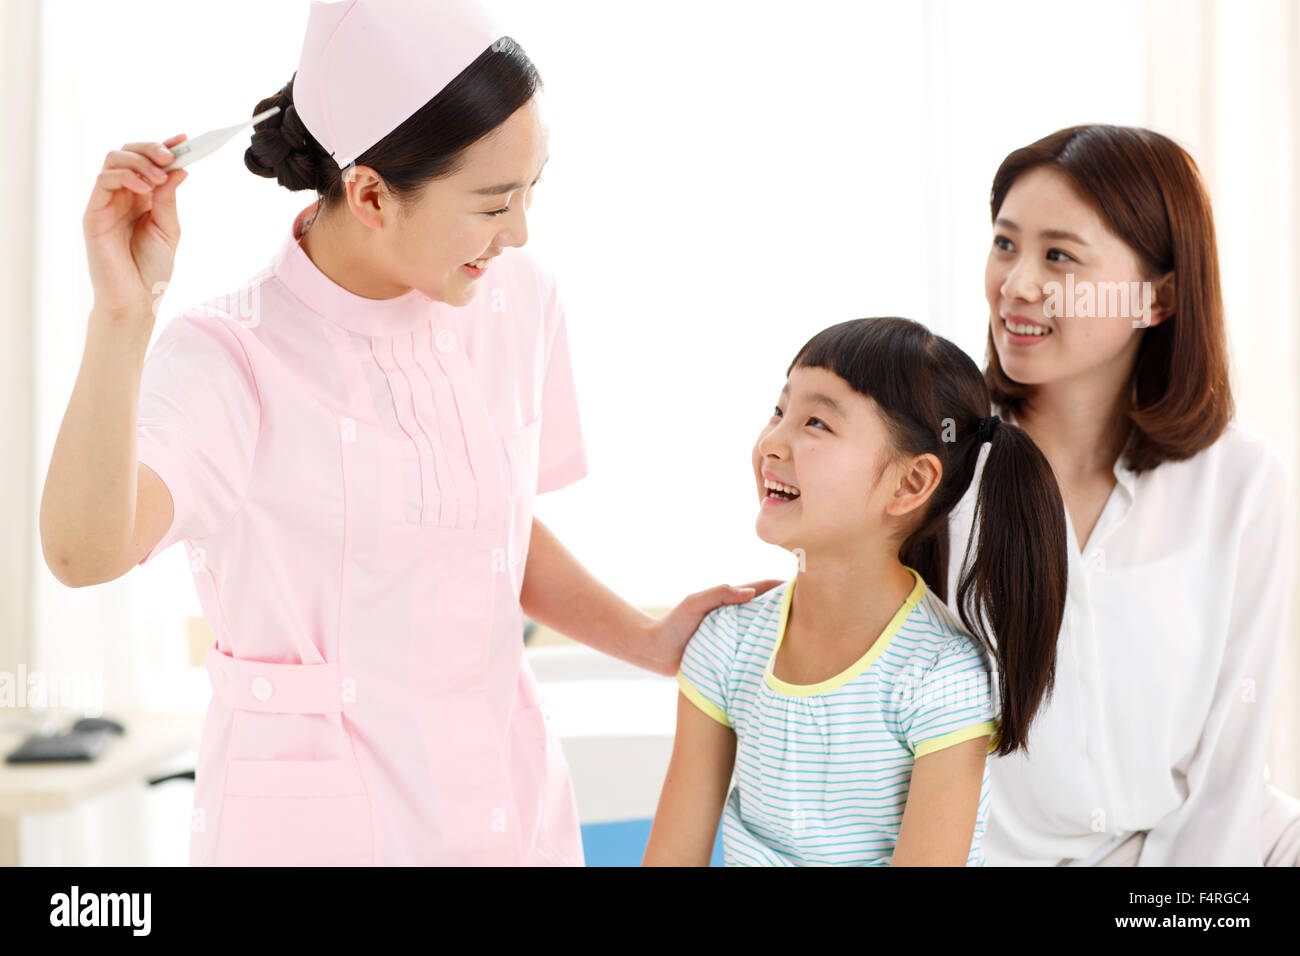 The female nurse is giving the little girl the temperature. - Stock Image